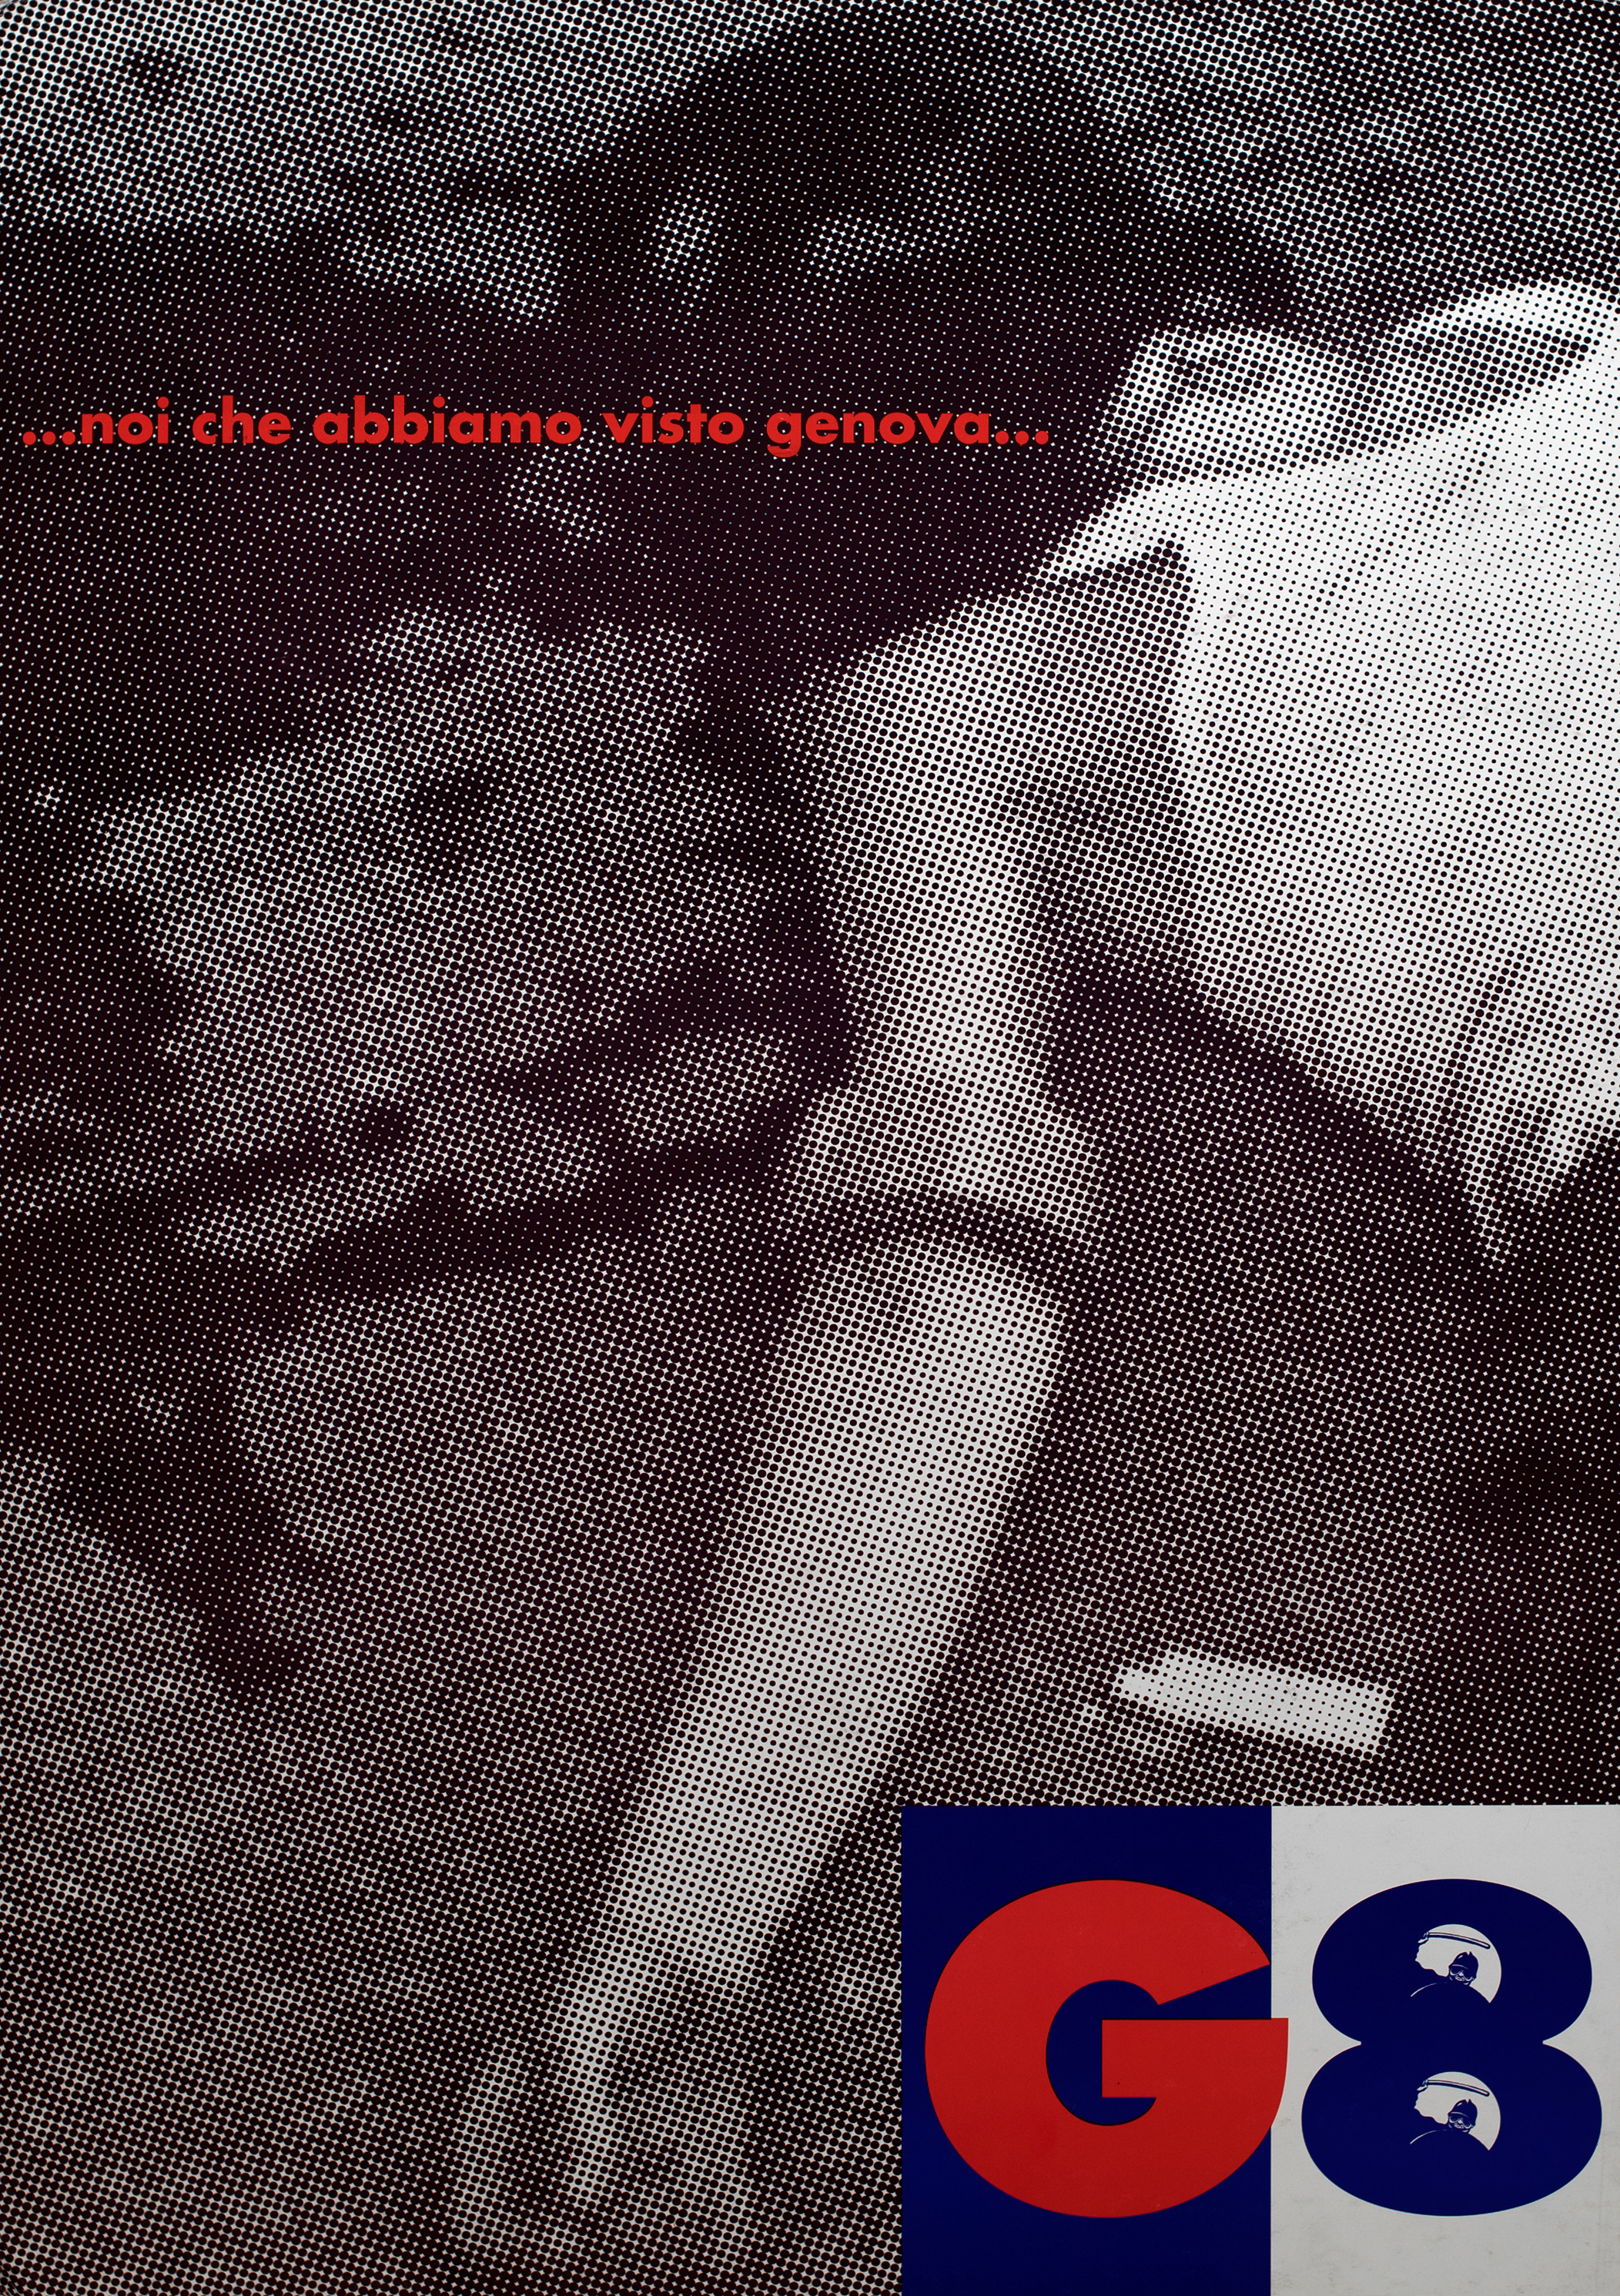 "A grainy, halftone image of a corpse in white tank top and dark balaclava (the G8 protester Carlo Giuliani). Red overlaid text of the song lyrics, ""...noi che abbiamo visto genova..."" (in English, ""now that we have seen Genoa""). At the bottom right, a red, capital ""G"" on a blue square and a blue ""8"" on a white square. In the enclosed spaces of the ""8"" is a cartoonish police officer with a skull face raising a baton."